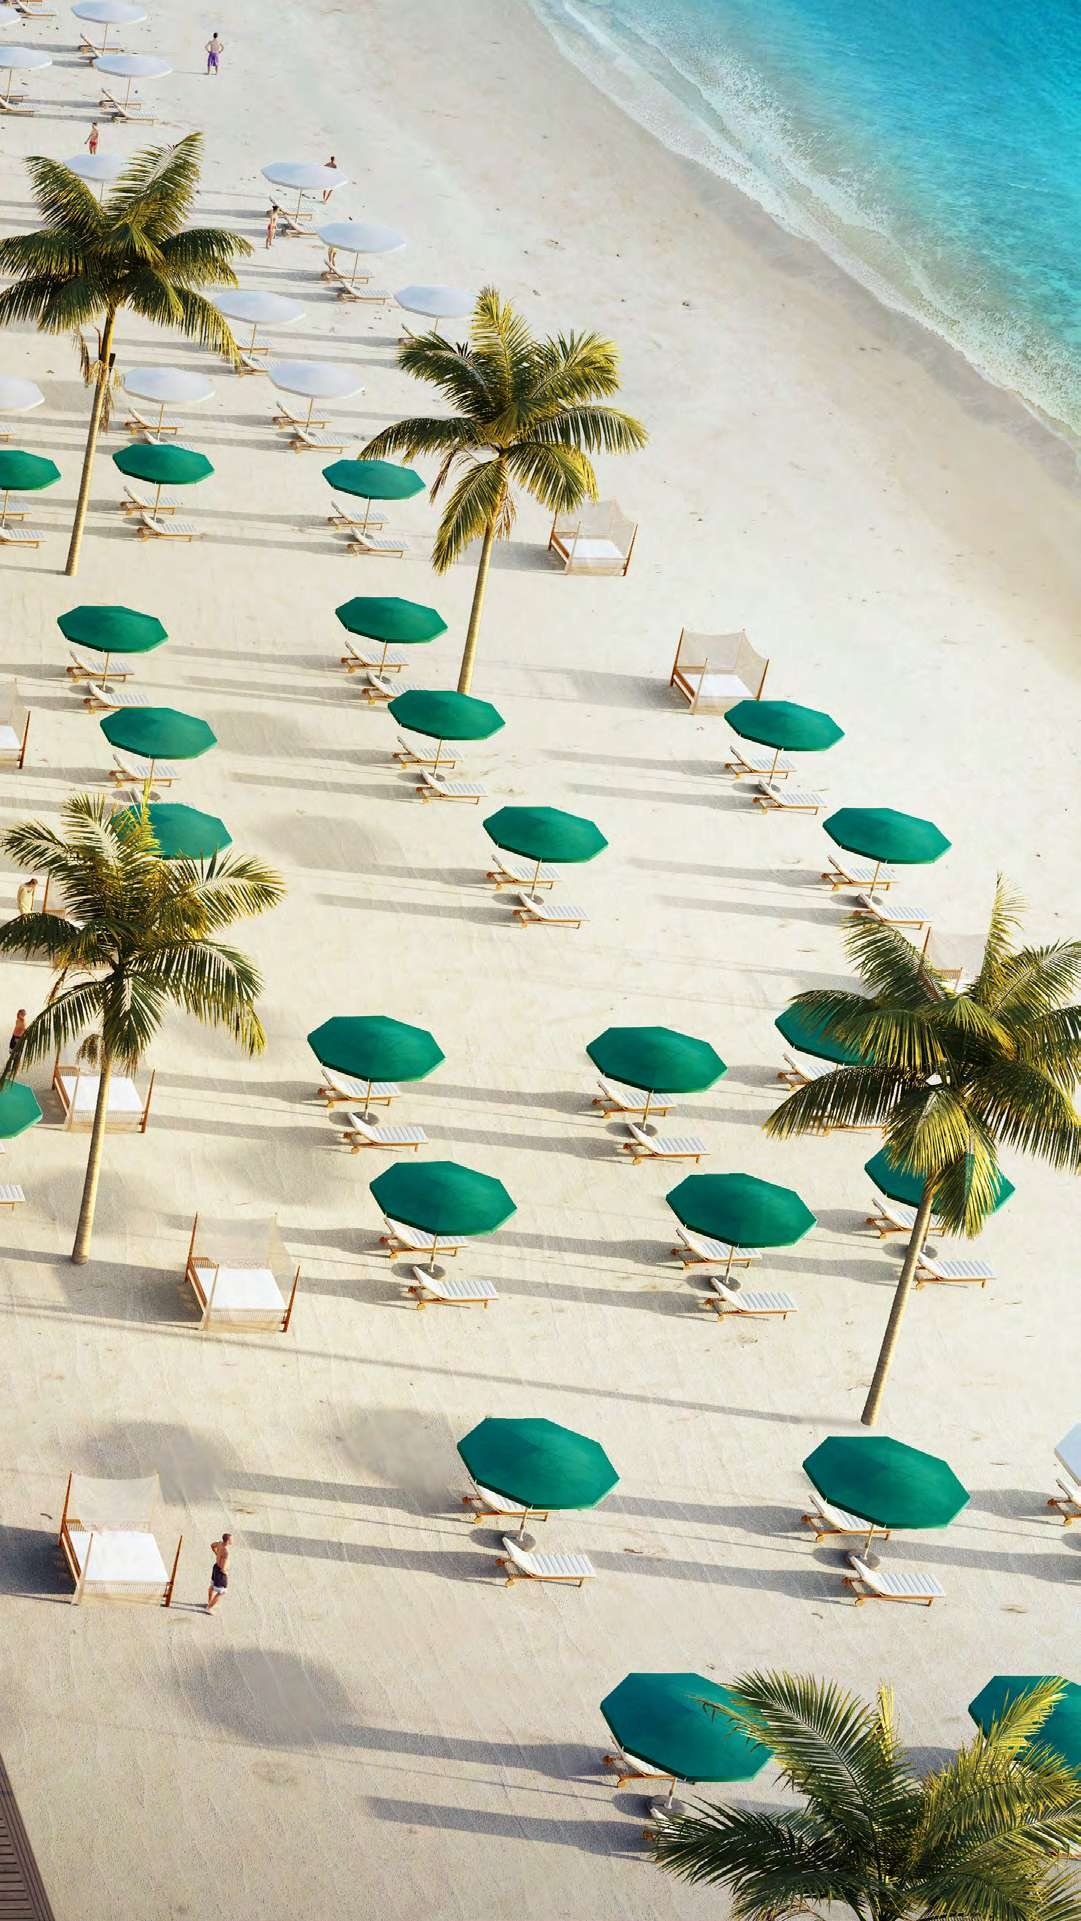 DISCOVER THE CHARMS OF A GATED PRIVATE ISLAND